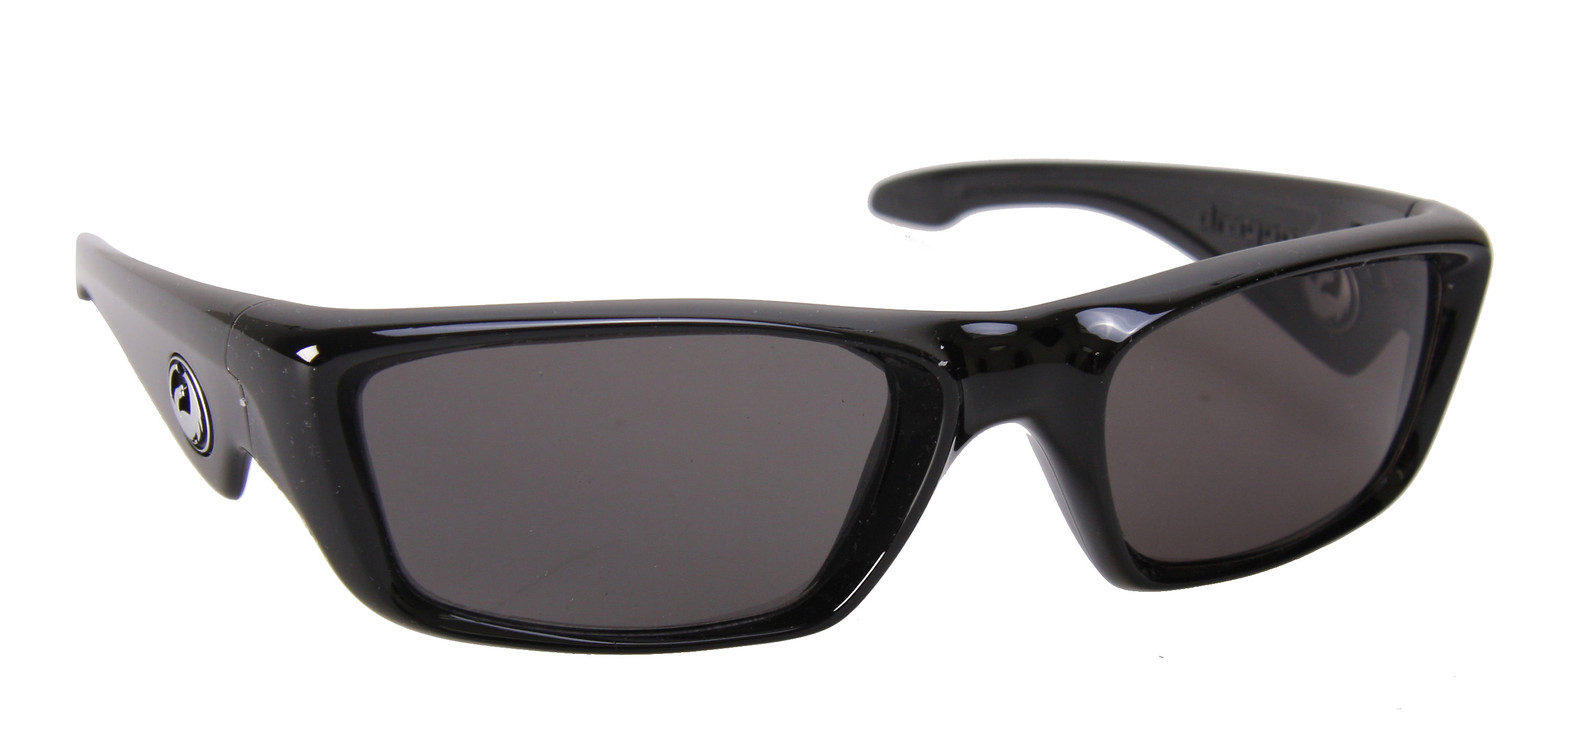 Dragon Rev Sunglasses Jet/Grey Lens  dragon-rev-sngls-jetgry-09.jpg